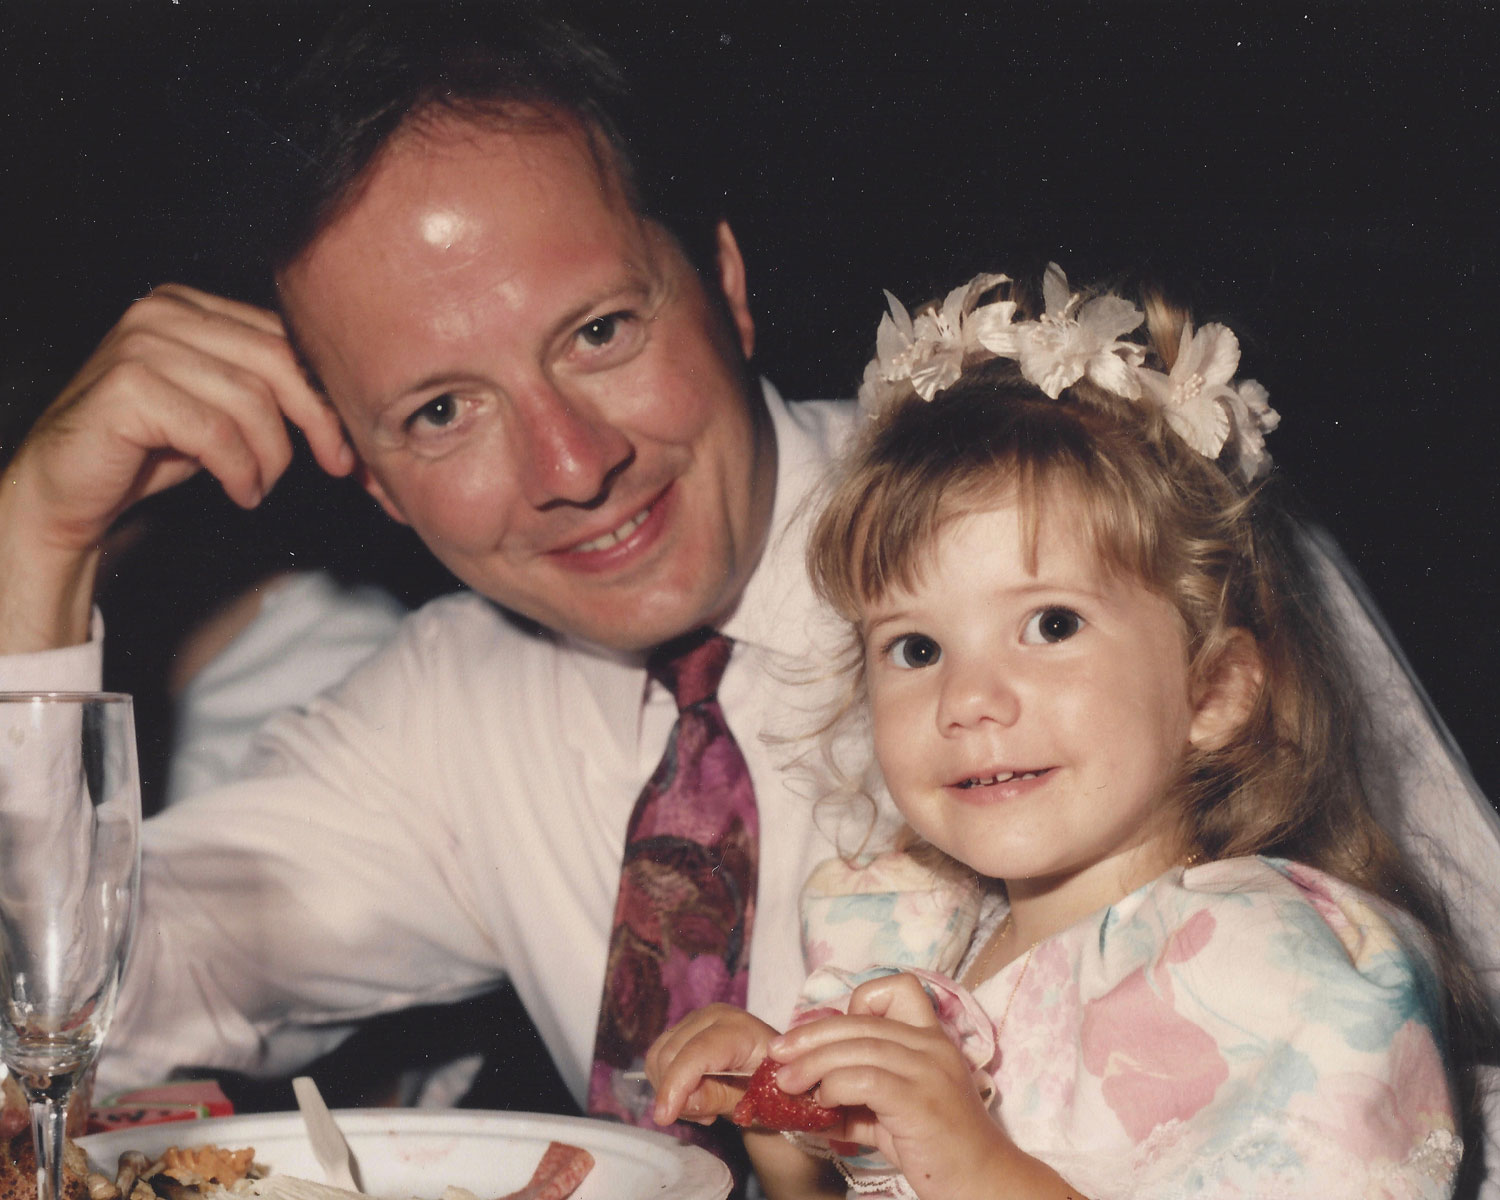 Katlyn and Dad at a wedding where she was a flower girl